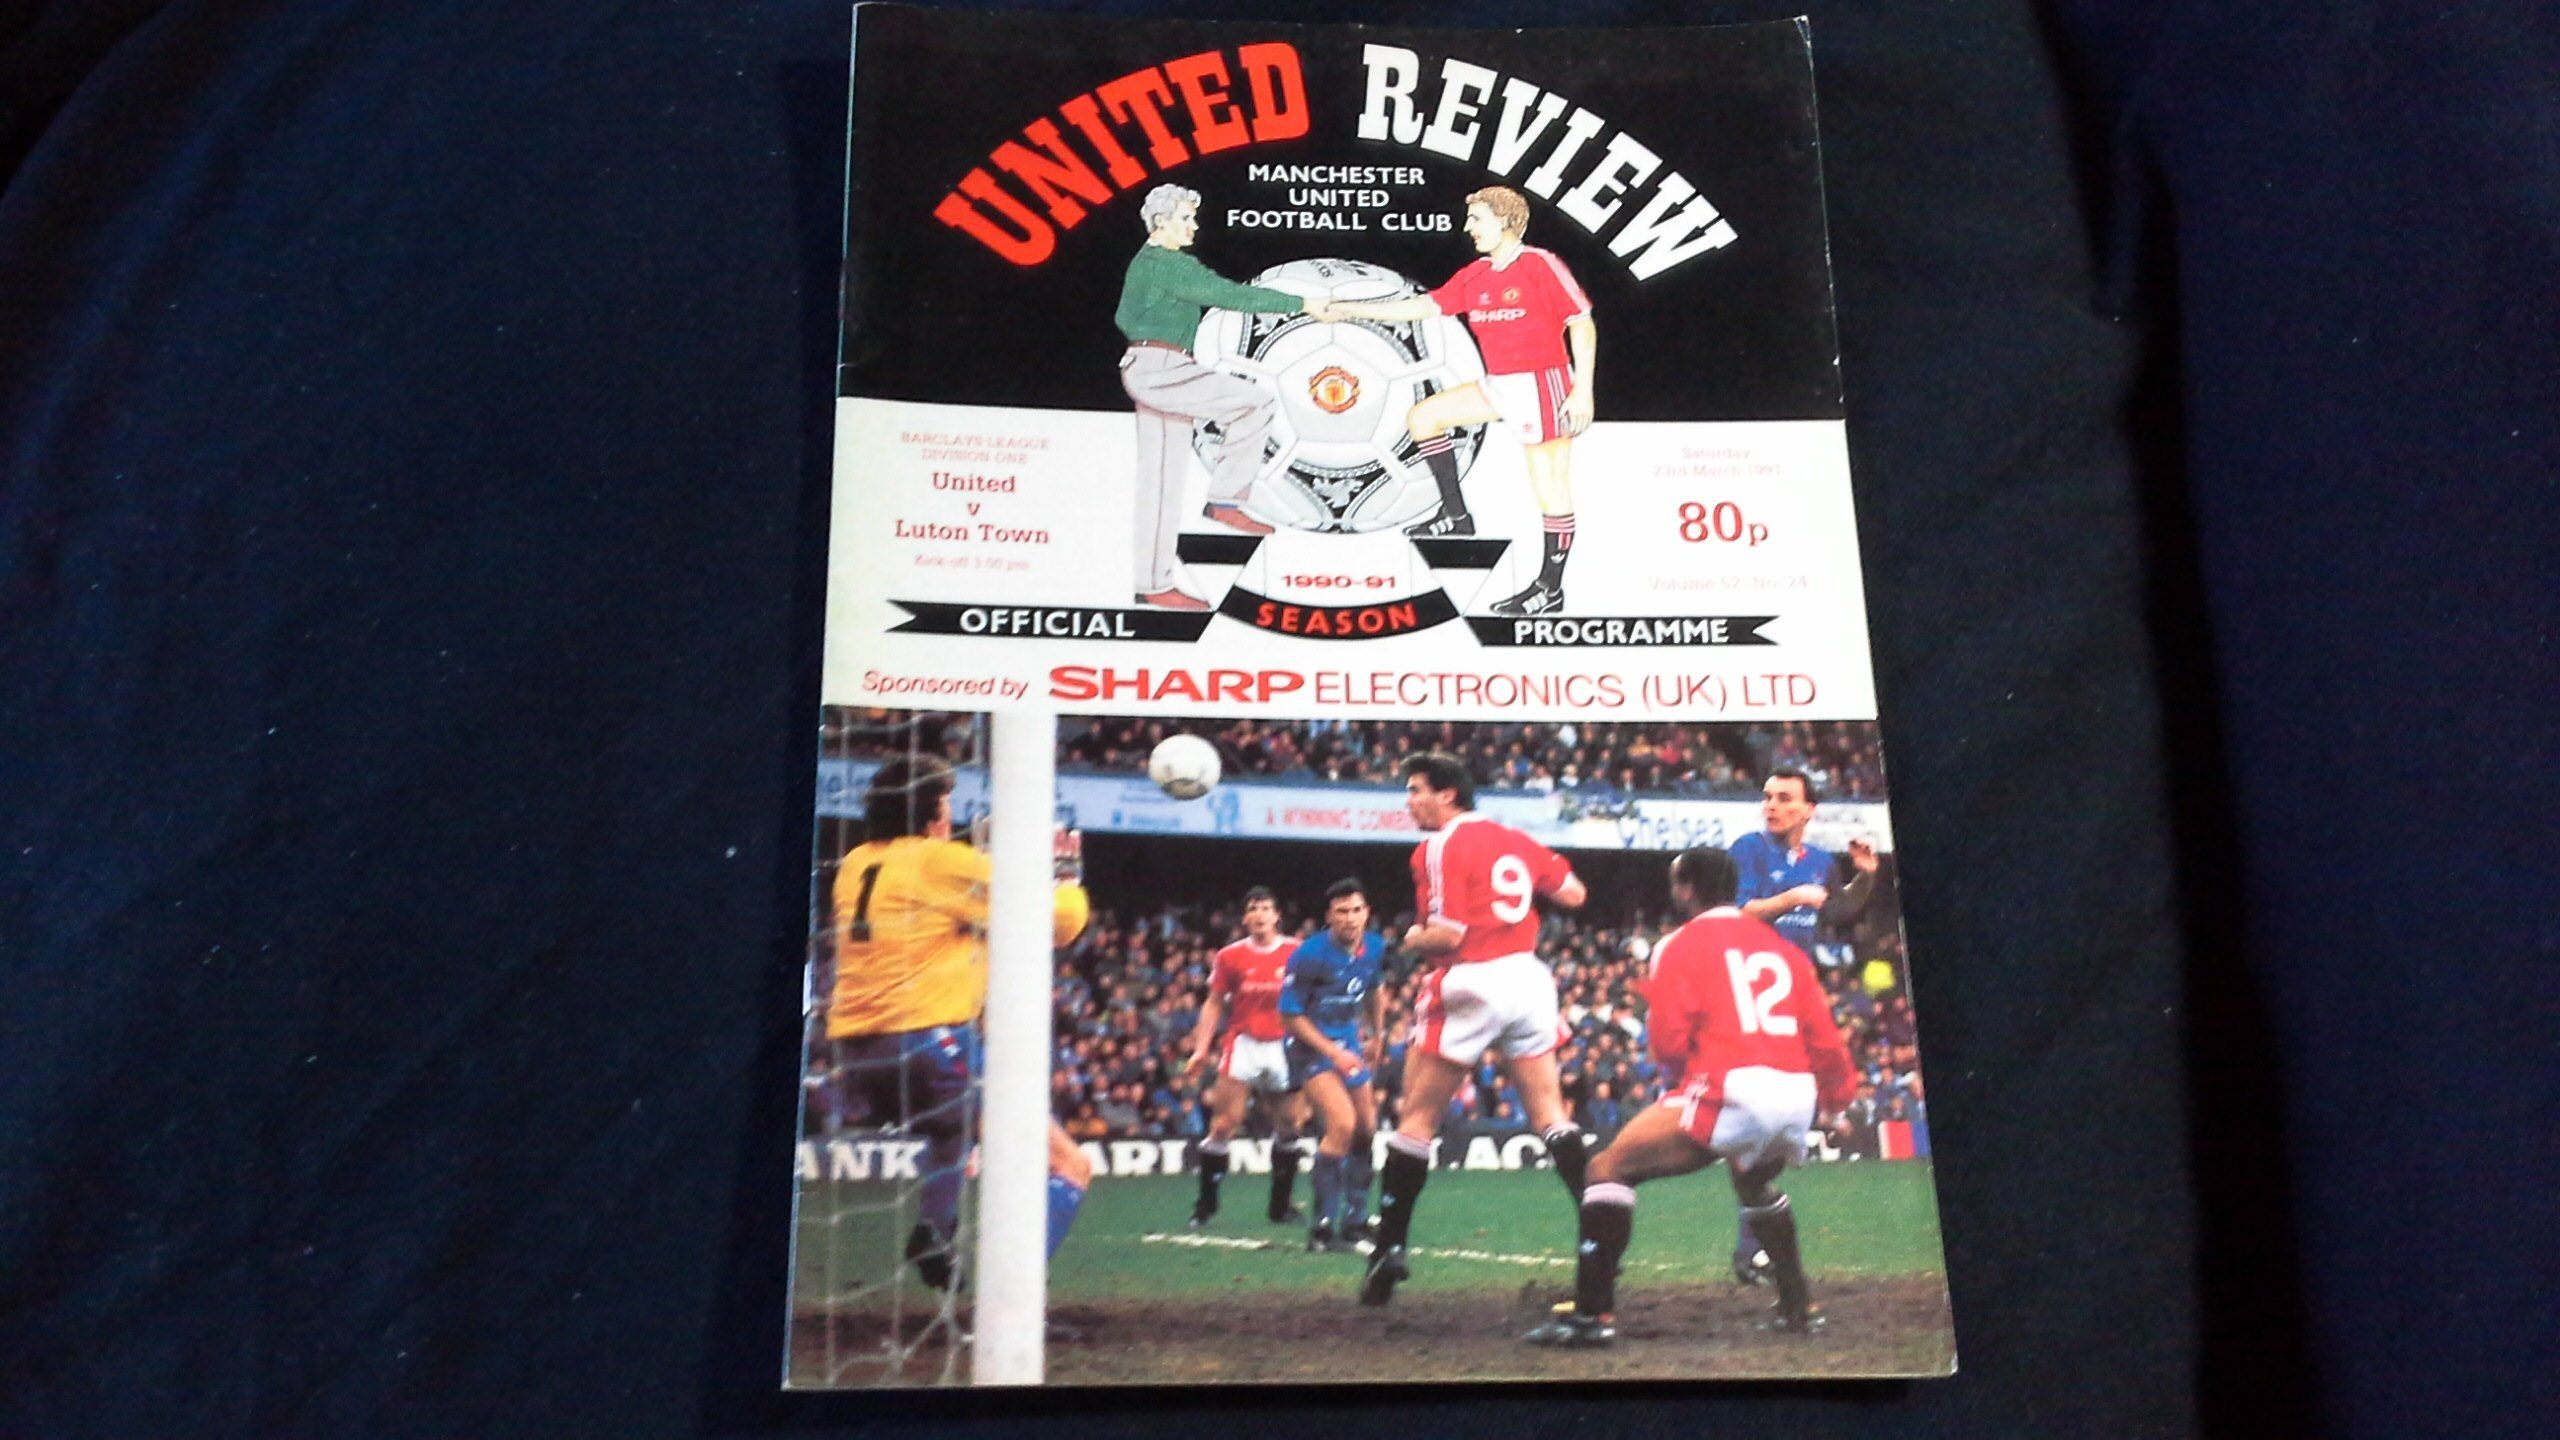 Manchester United V Luton Town Saturday 23rd March 1991 Football Programme Manchester United Football Program Manchester